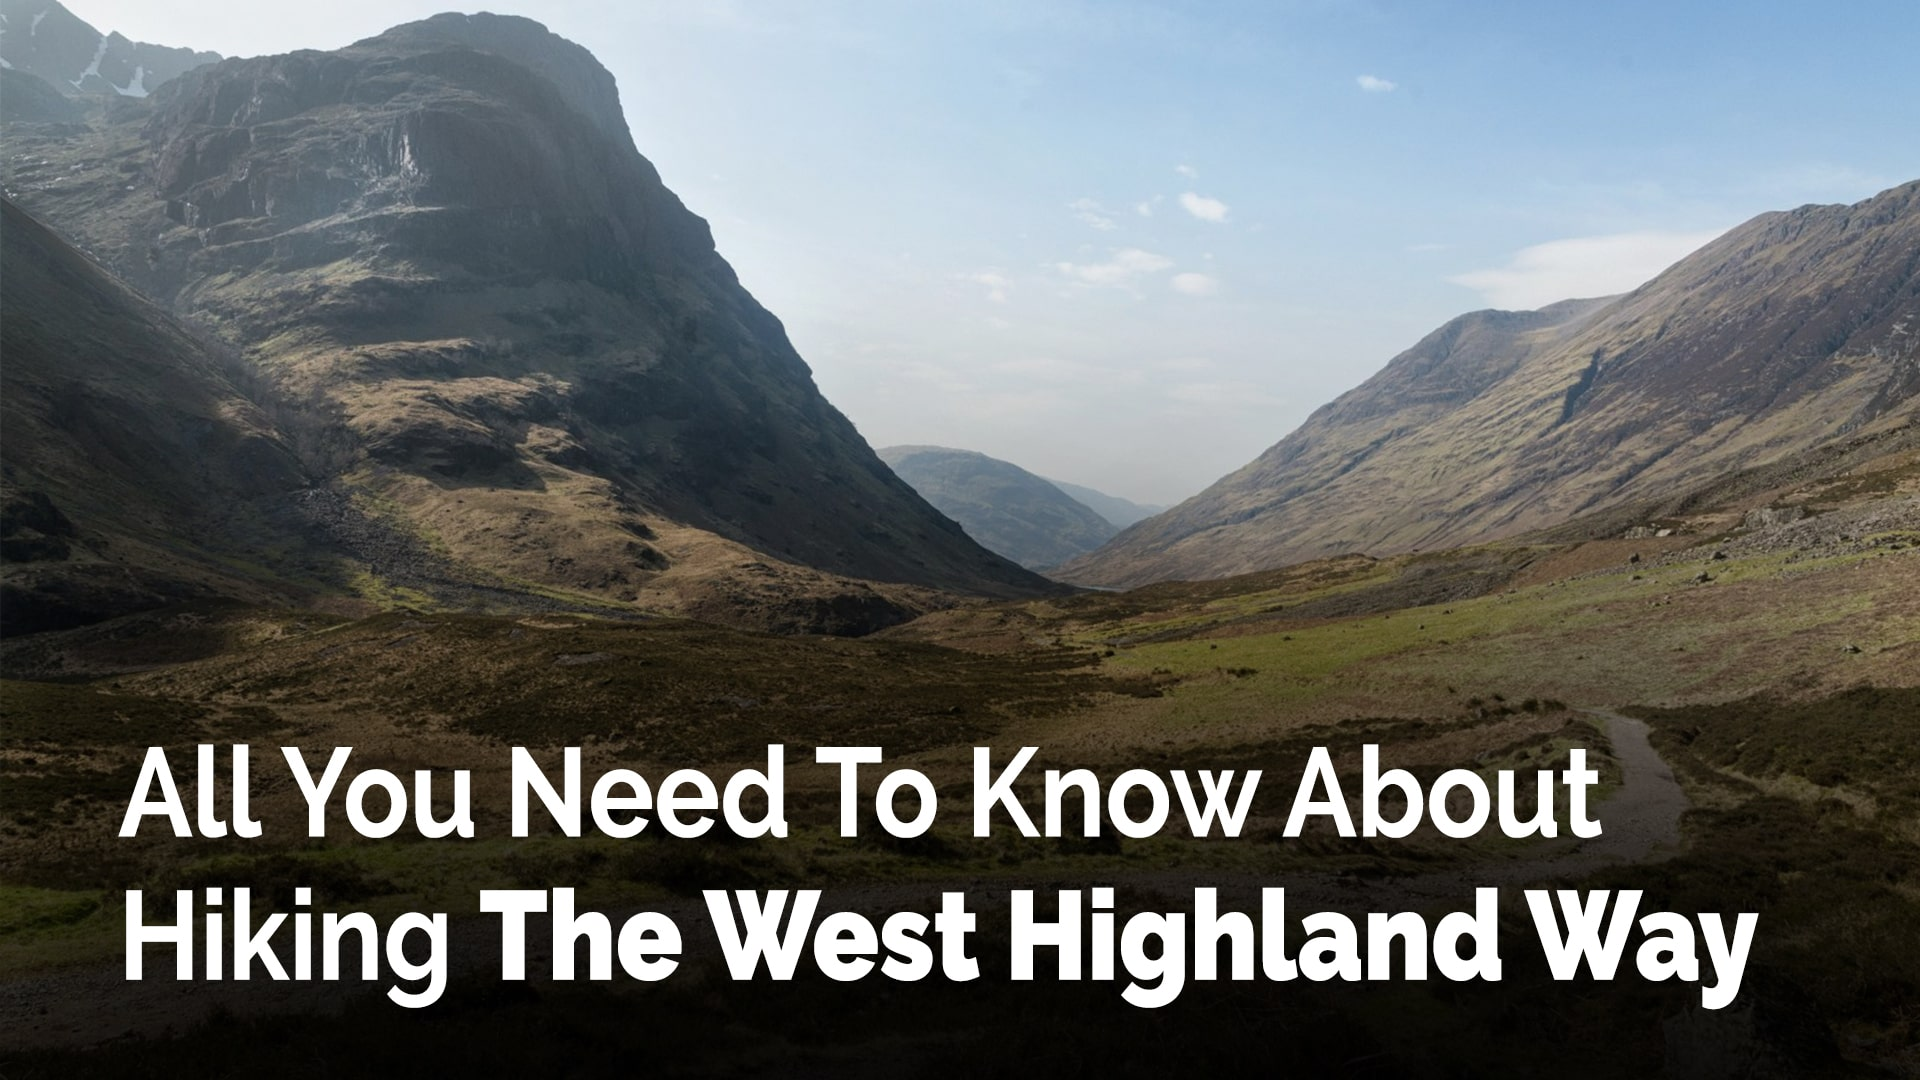 All You Need To Know About Hiking The West Highland Way